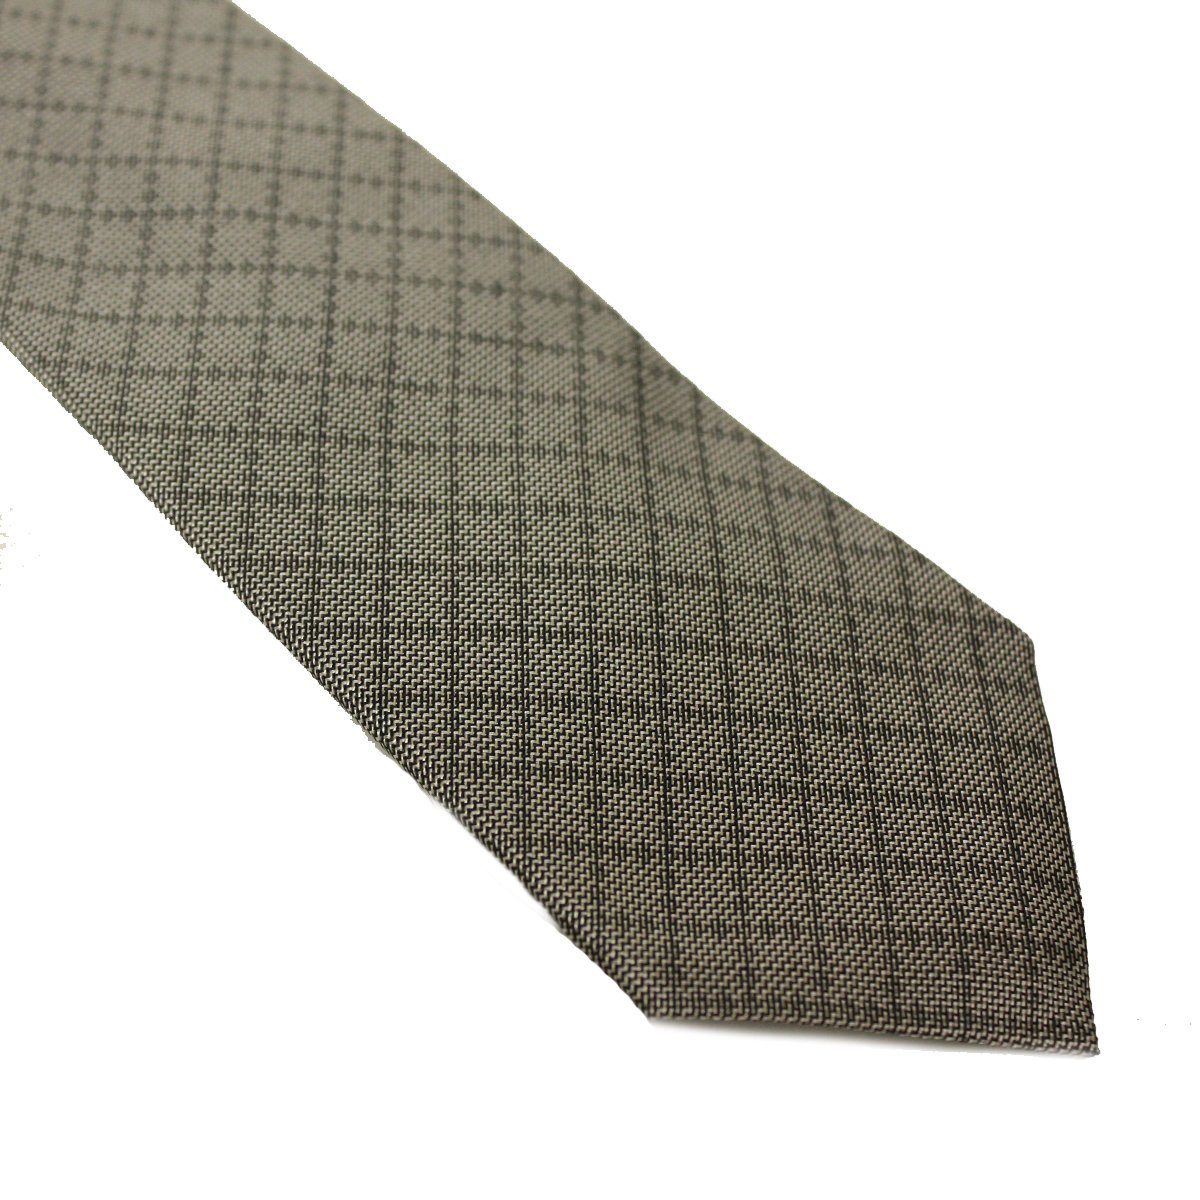 Gucci Gray Diamante Men's Woven Silk Tie 345265 4E002